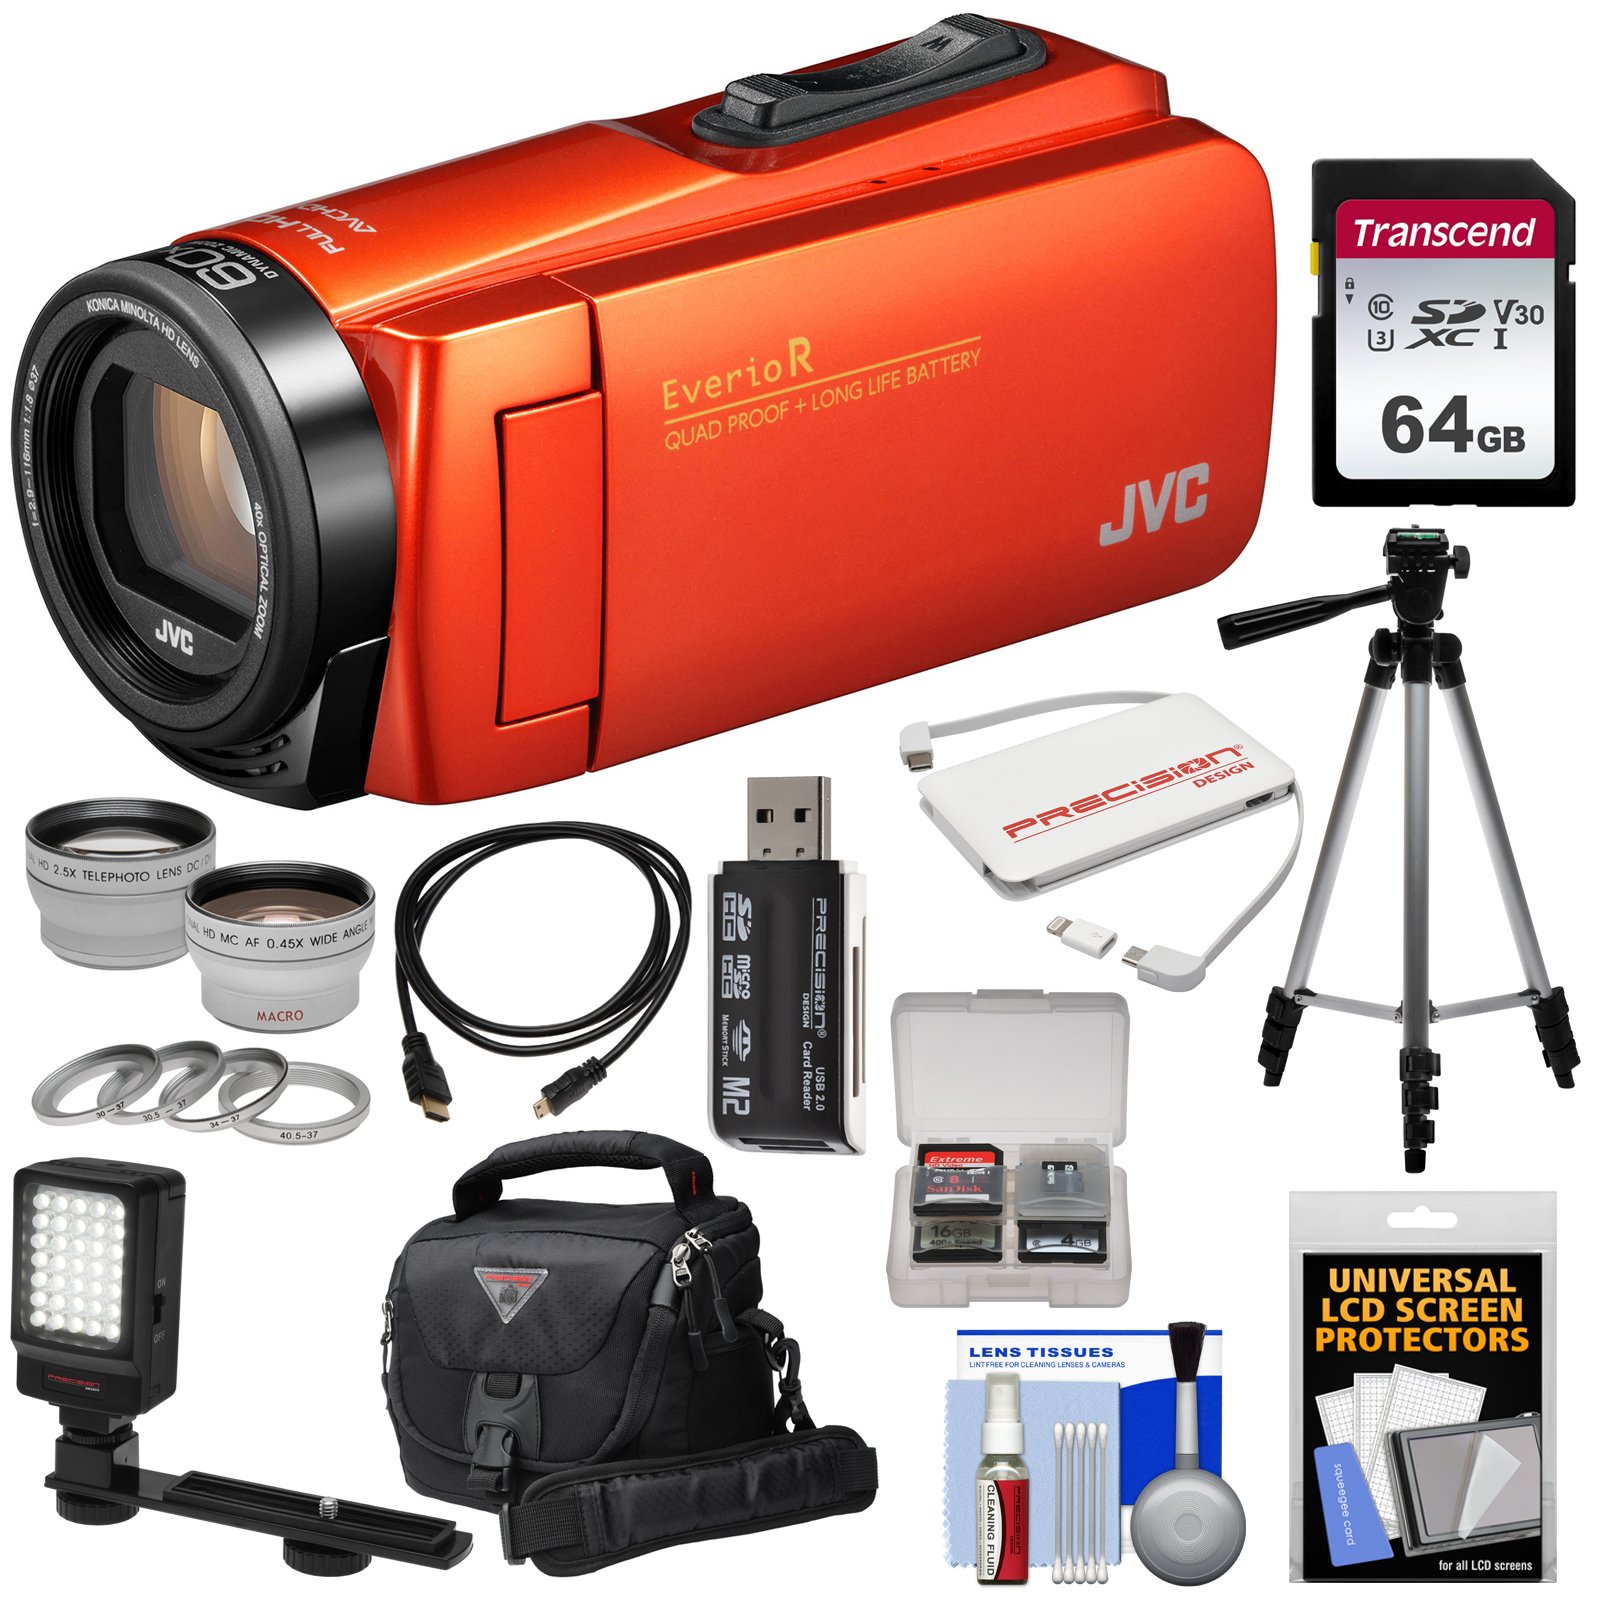 JVC Everio GZ-R460 Quad Proof 1080p HD Video Camera Camcorder (Orange) with 64GB Card + LED Light + Tripod + Case + Charger + 2 Lens Kit